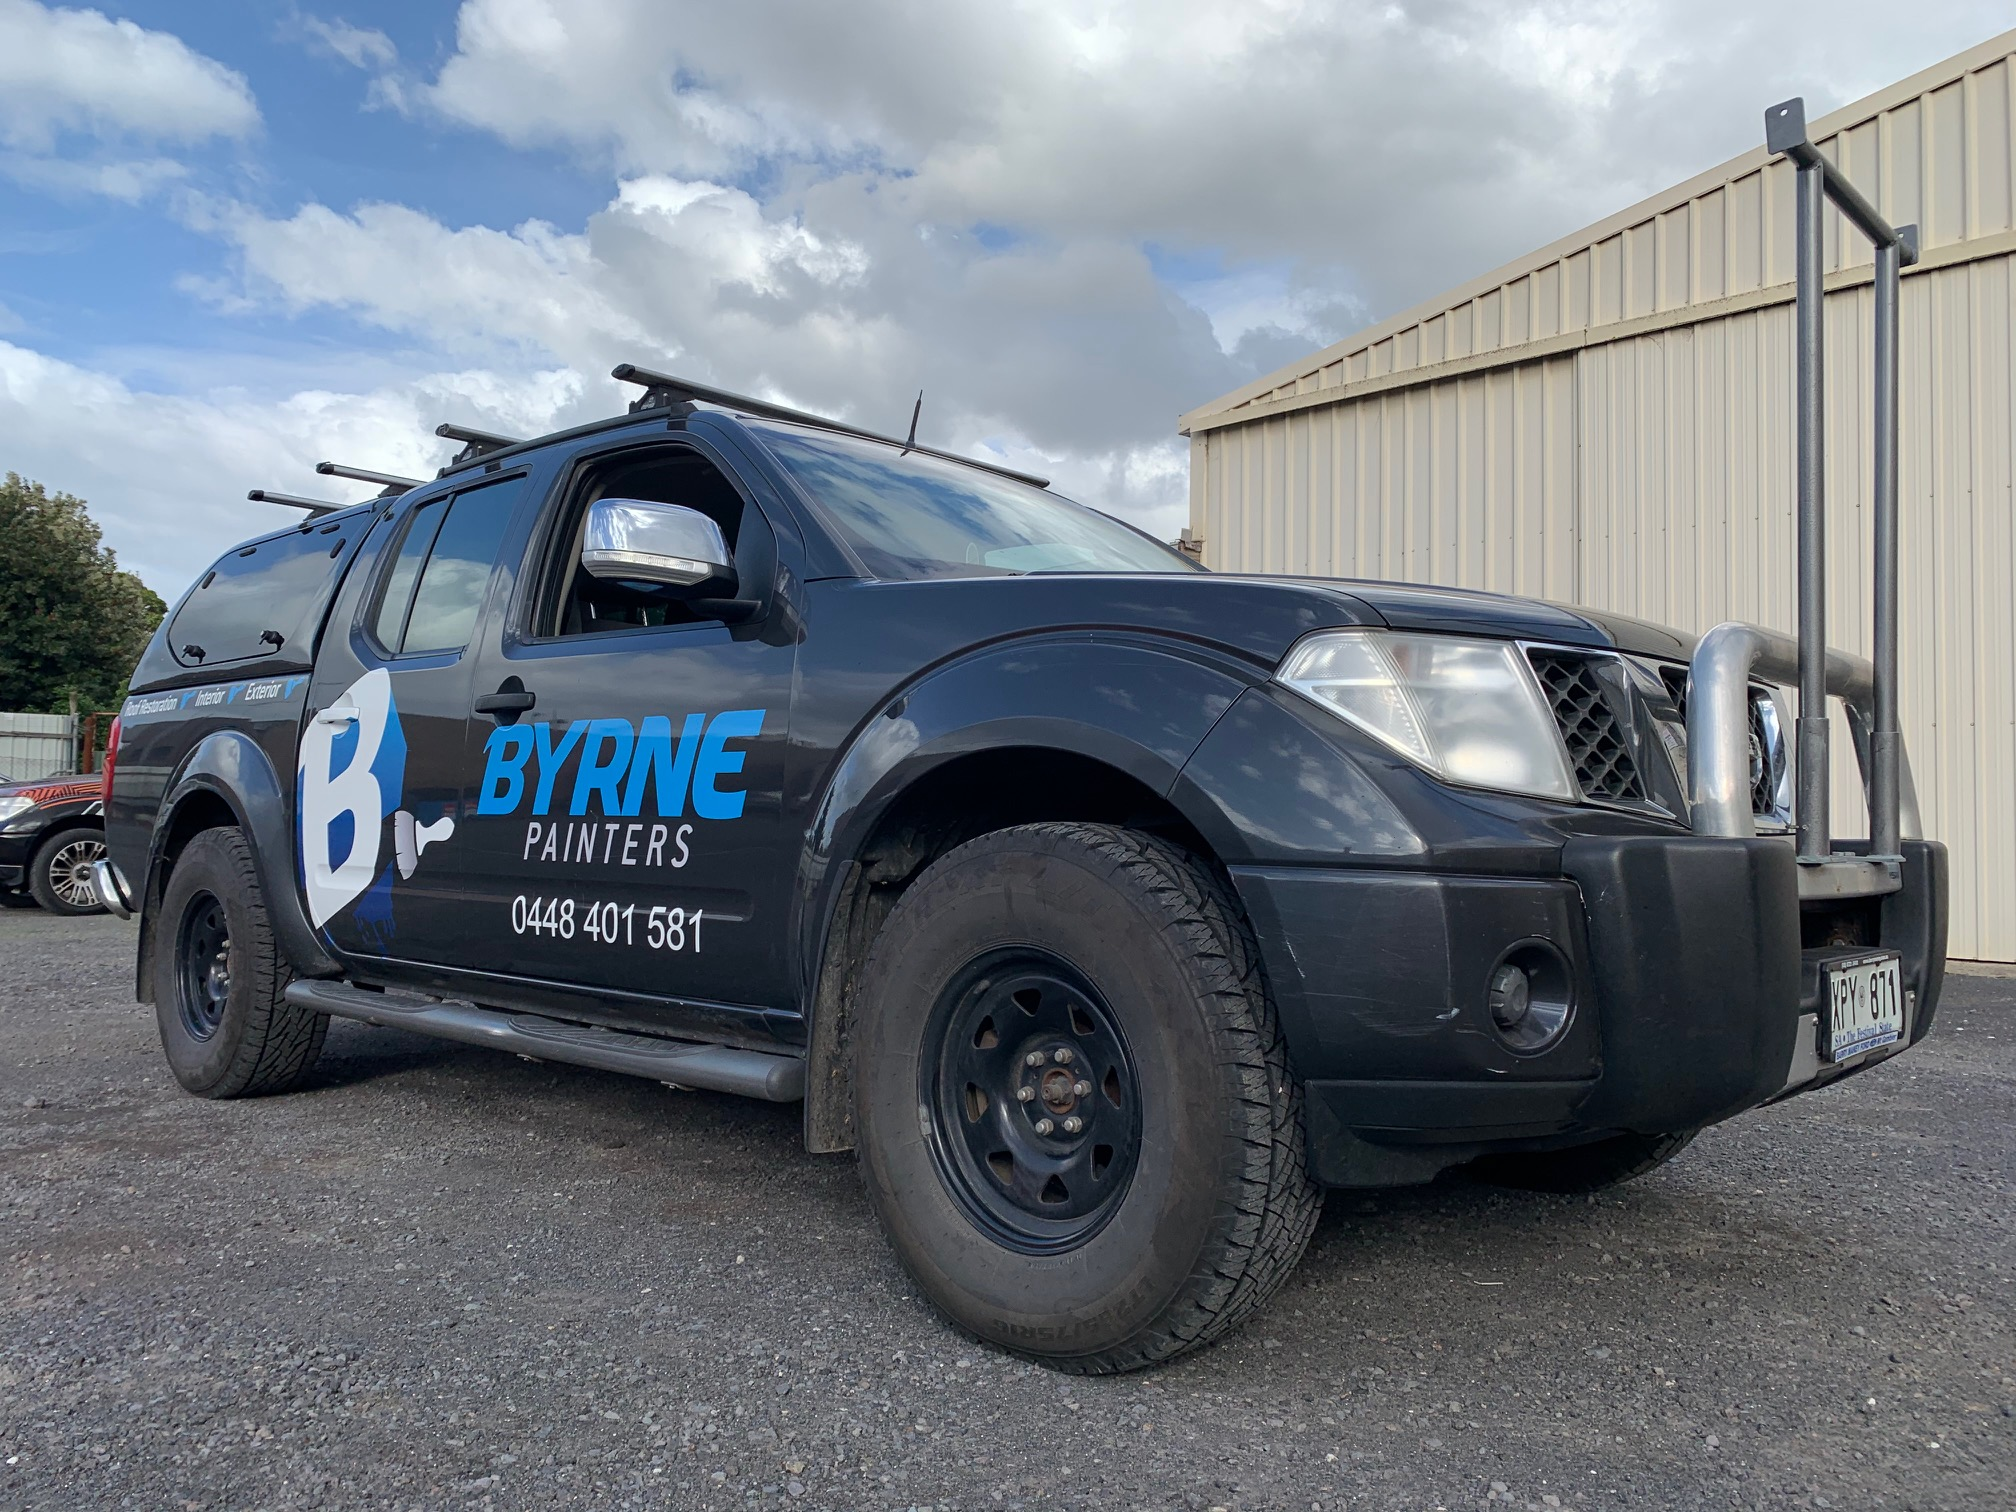 Byrne Painters Ute Signage